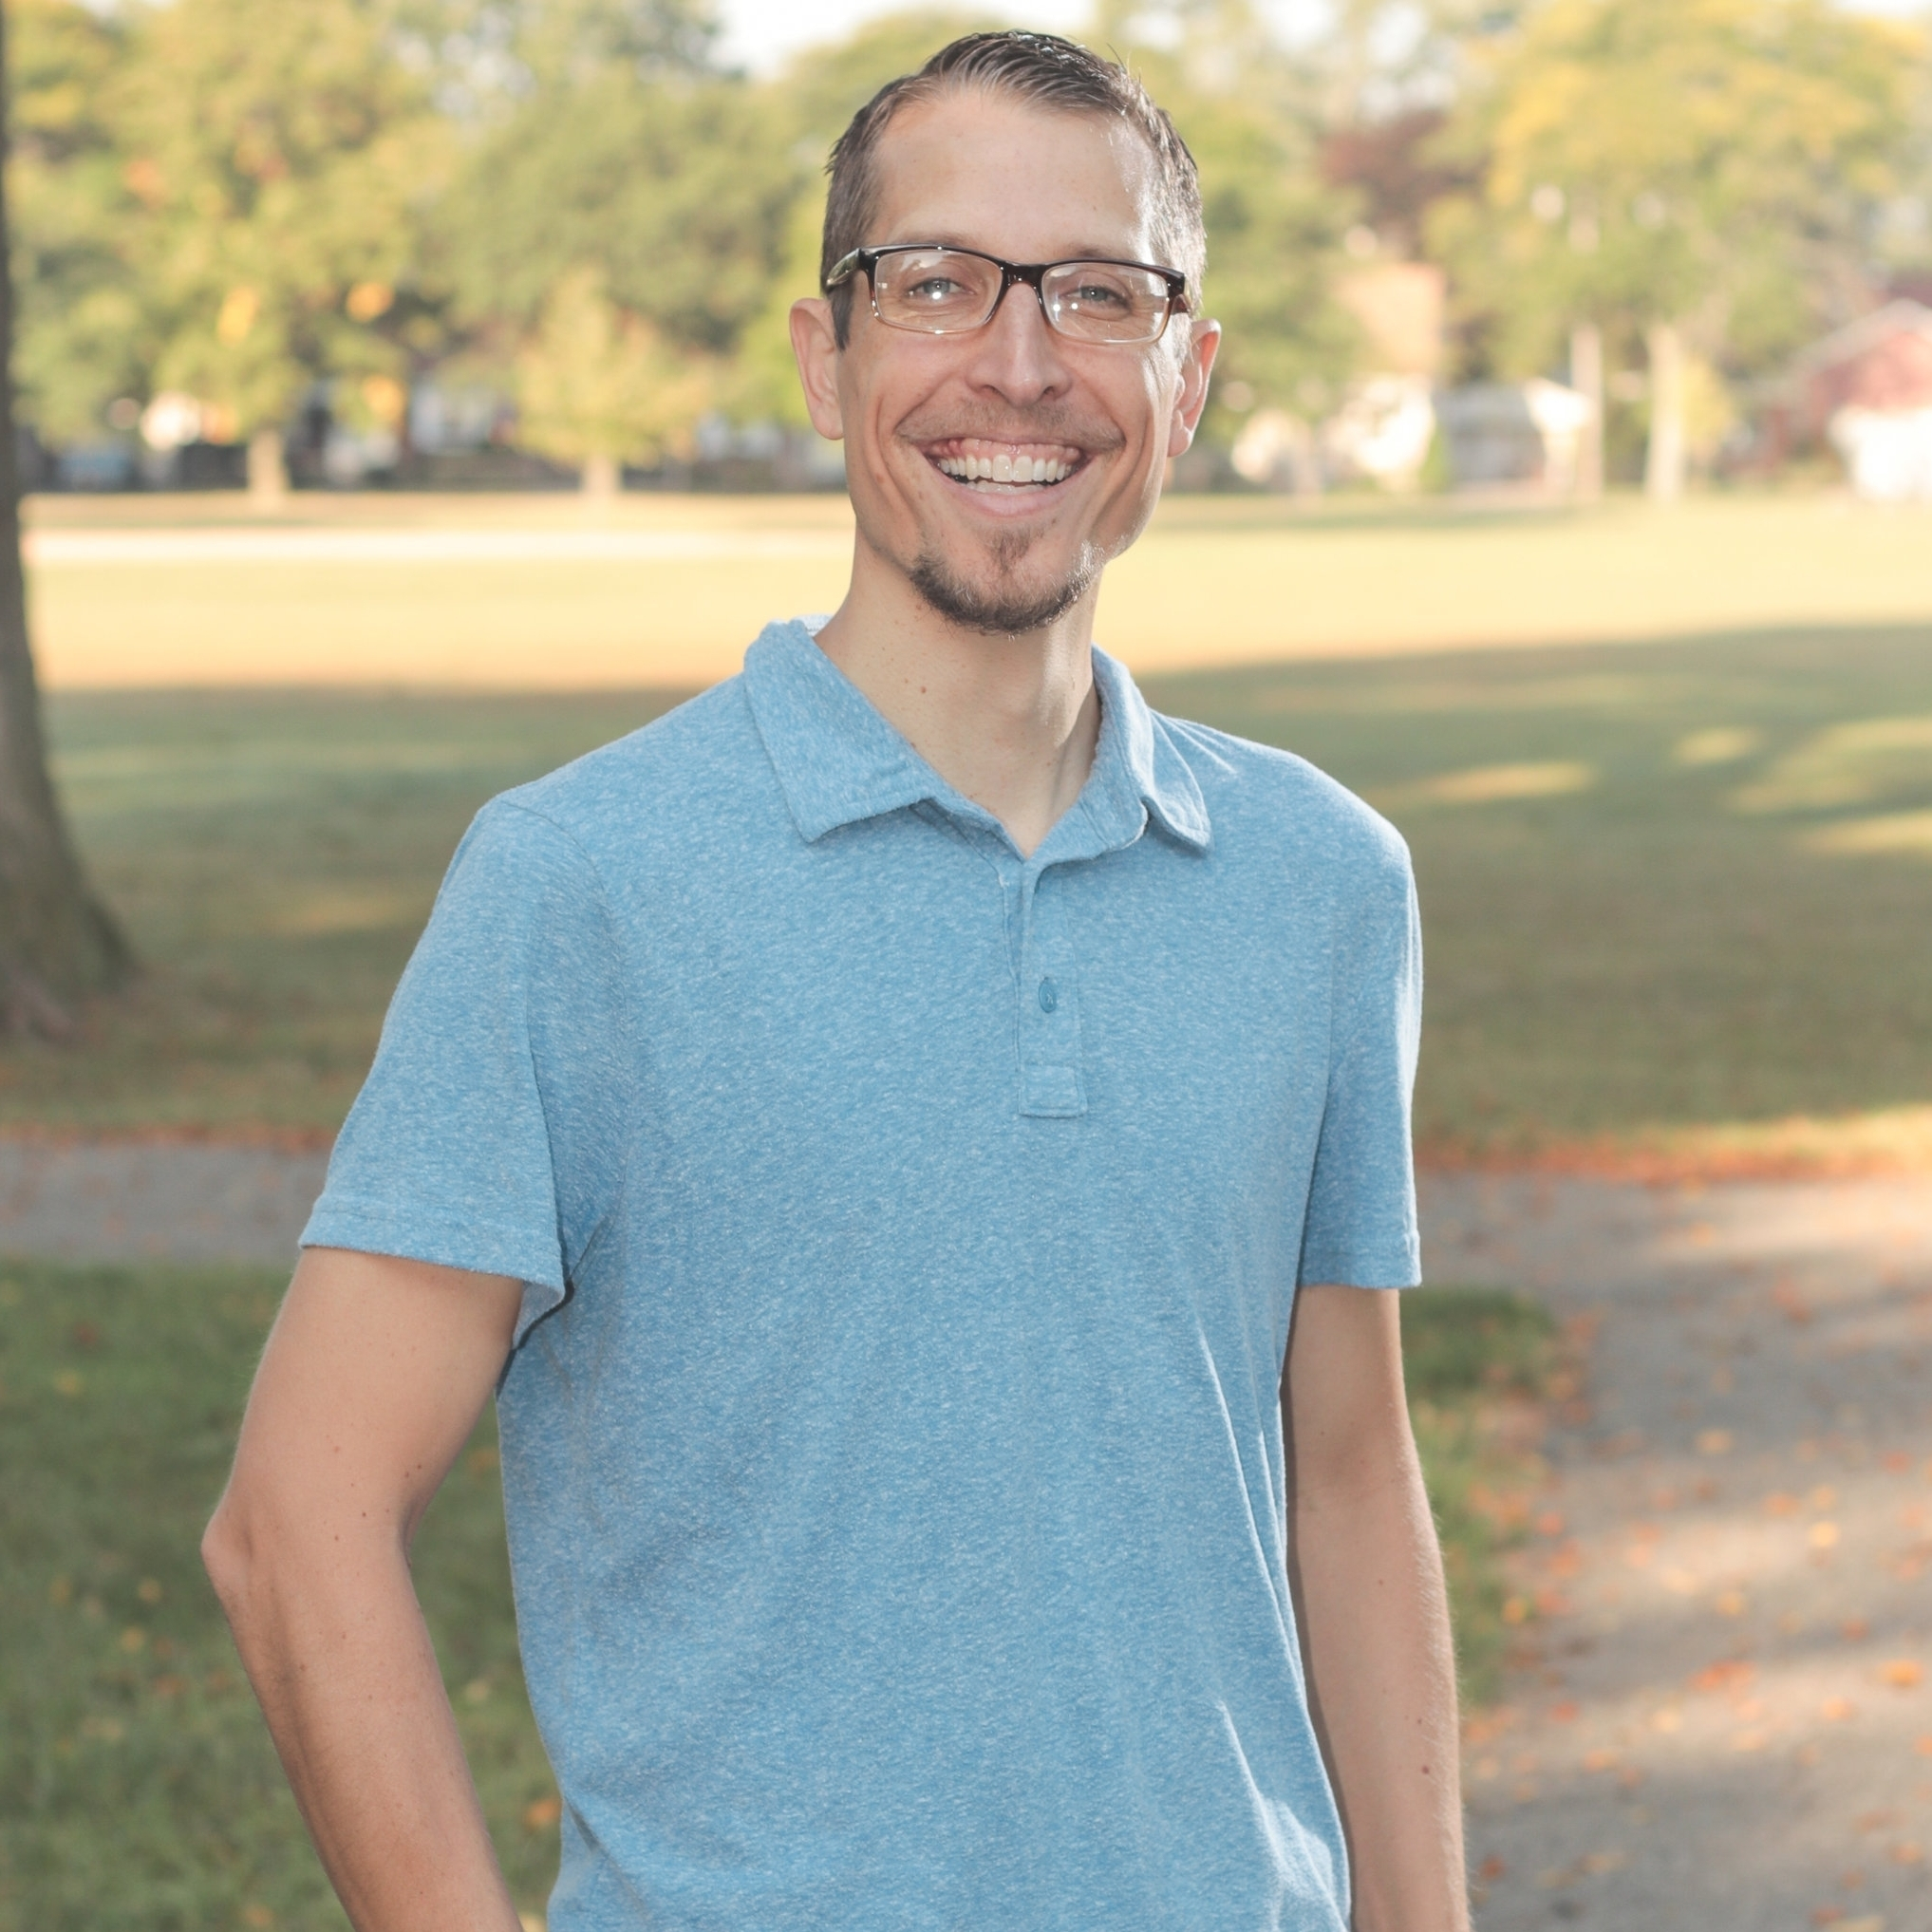 Jeremy Gyorke - Founder and Lead Pastor